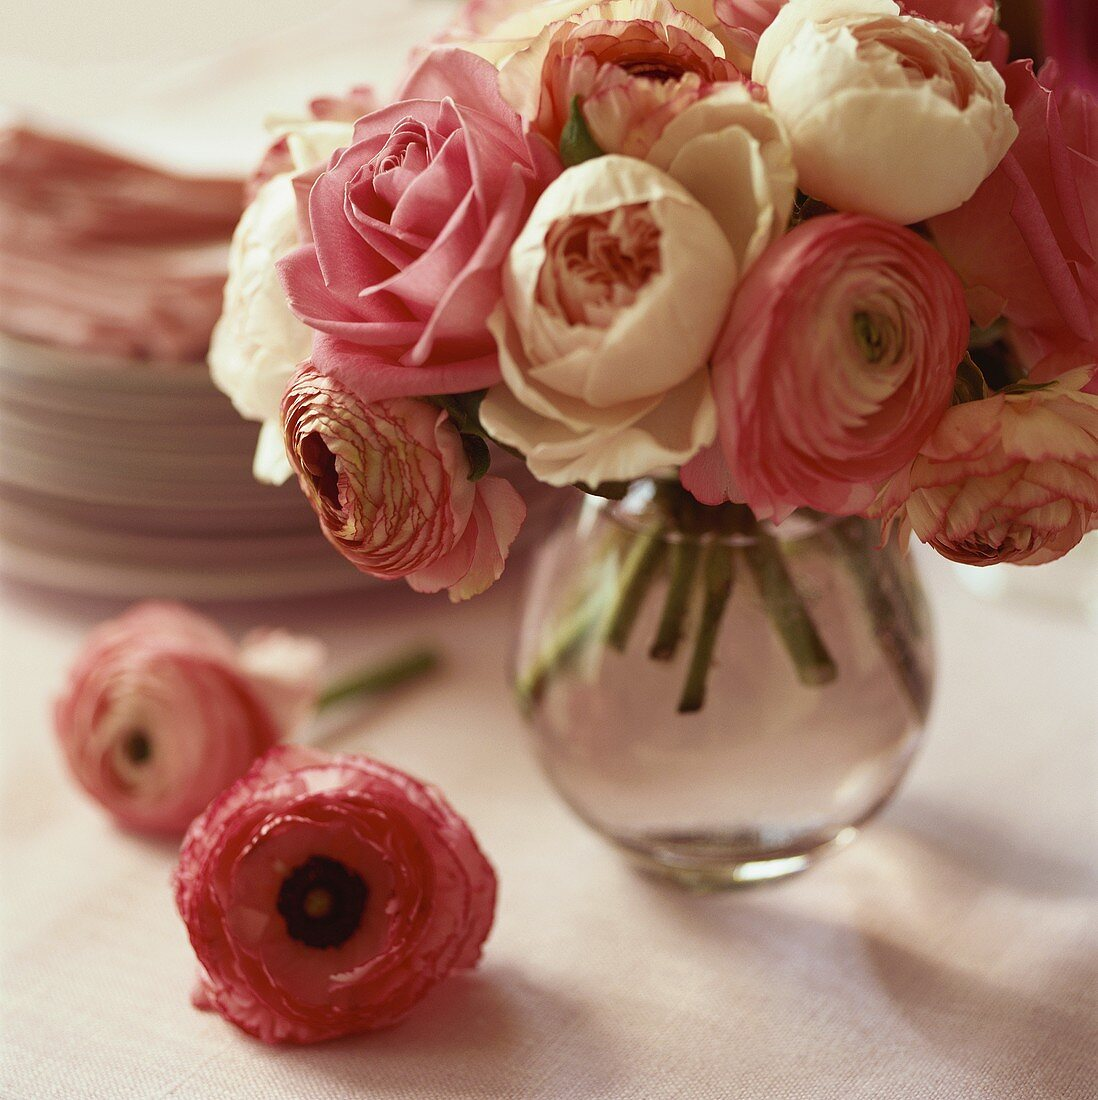 Pink ranunculuses in a vase in front of a pile of plates